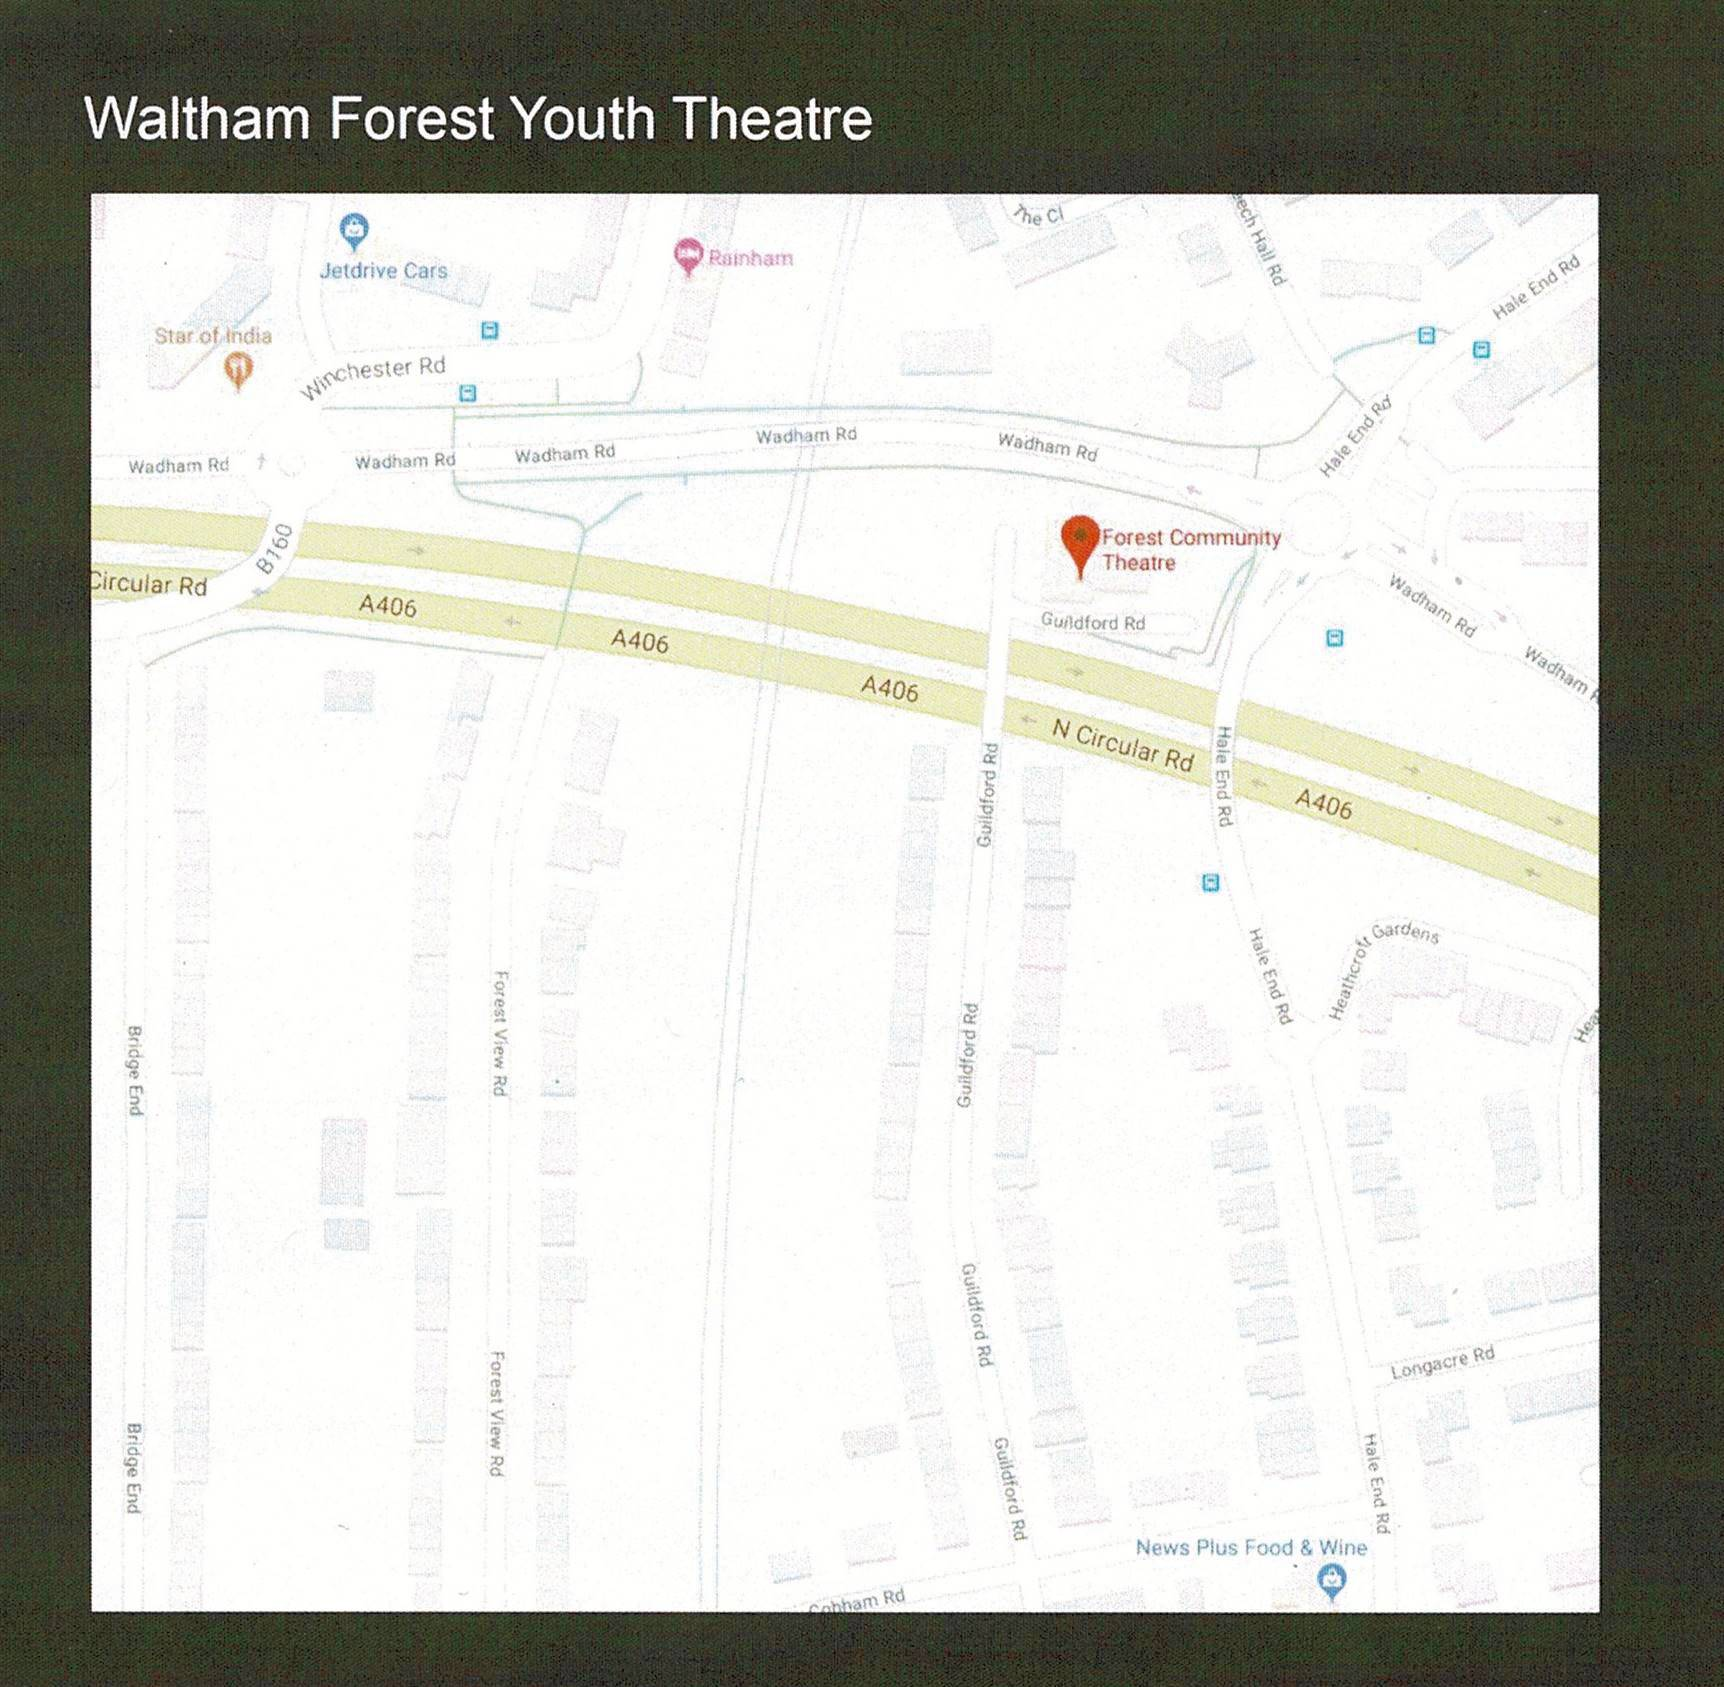 ACTING CLASS for 5 to 10 year olds at Waltham Forest Youth Theatre